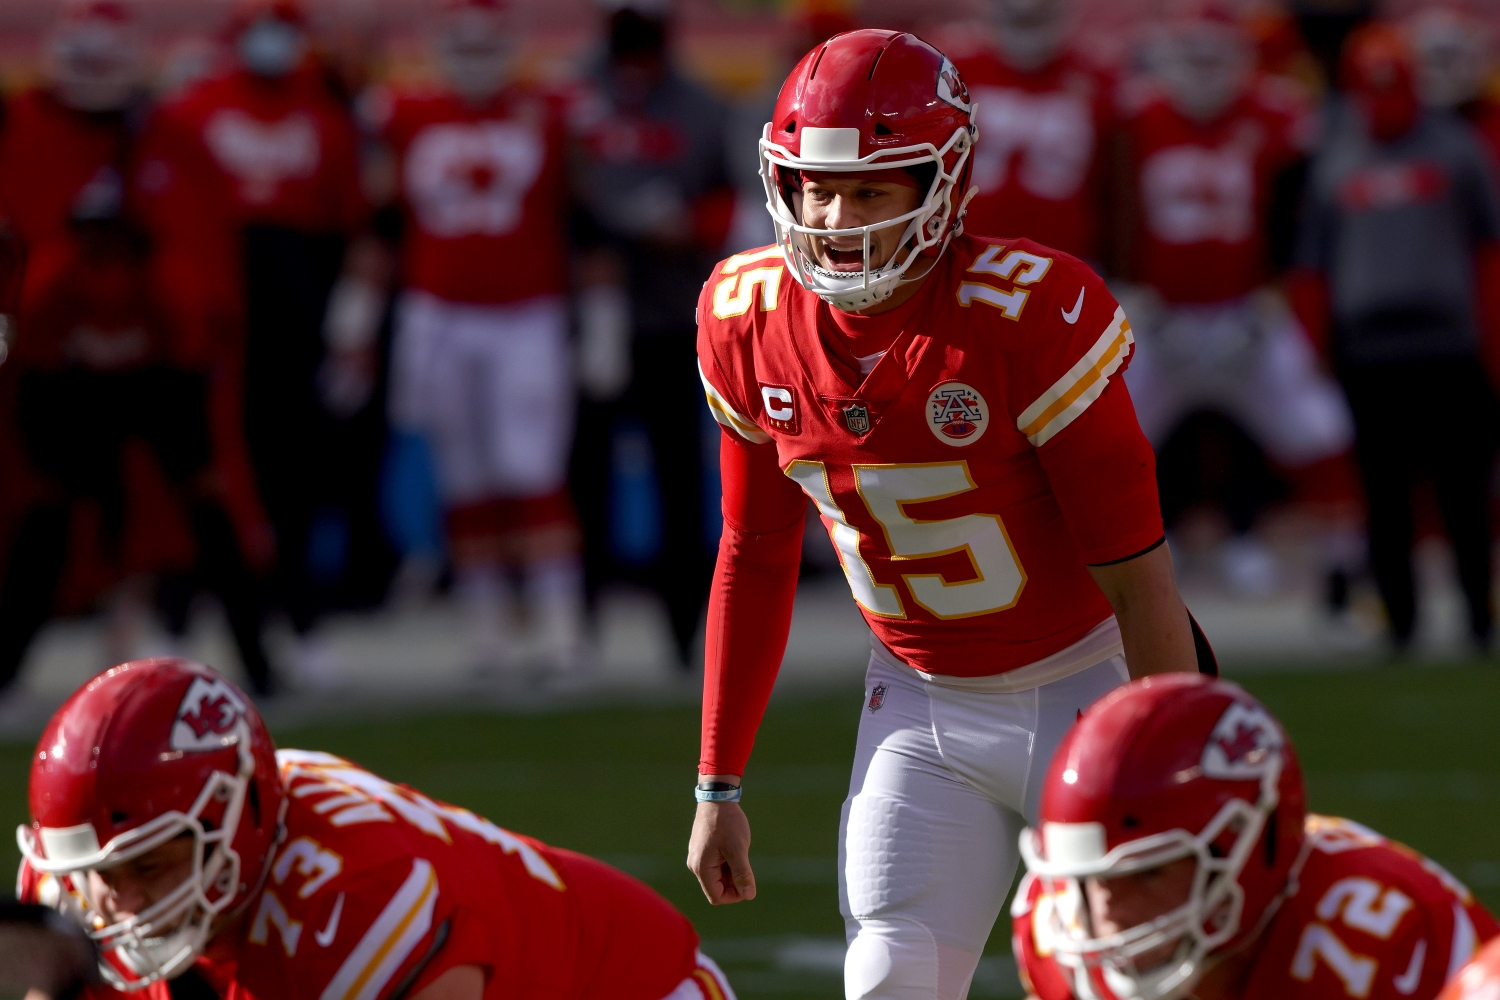 Patrick Mahomes of the Kansas City Chiefs prepares to take a snap in a 2021 playoff game against the Cleveland Browns.